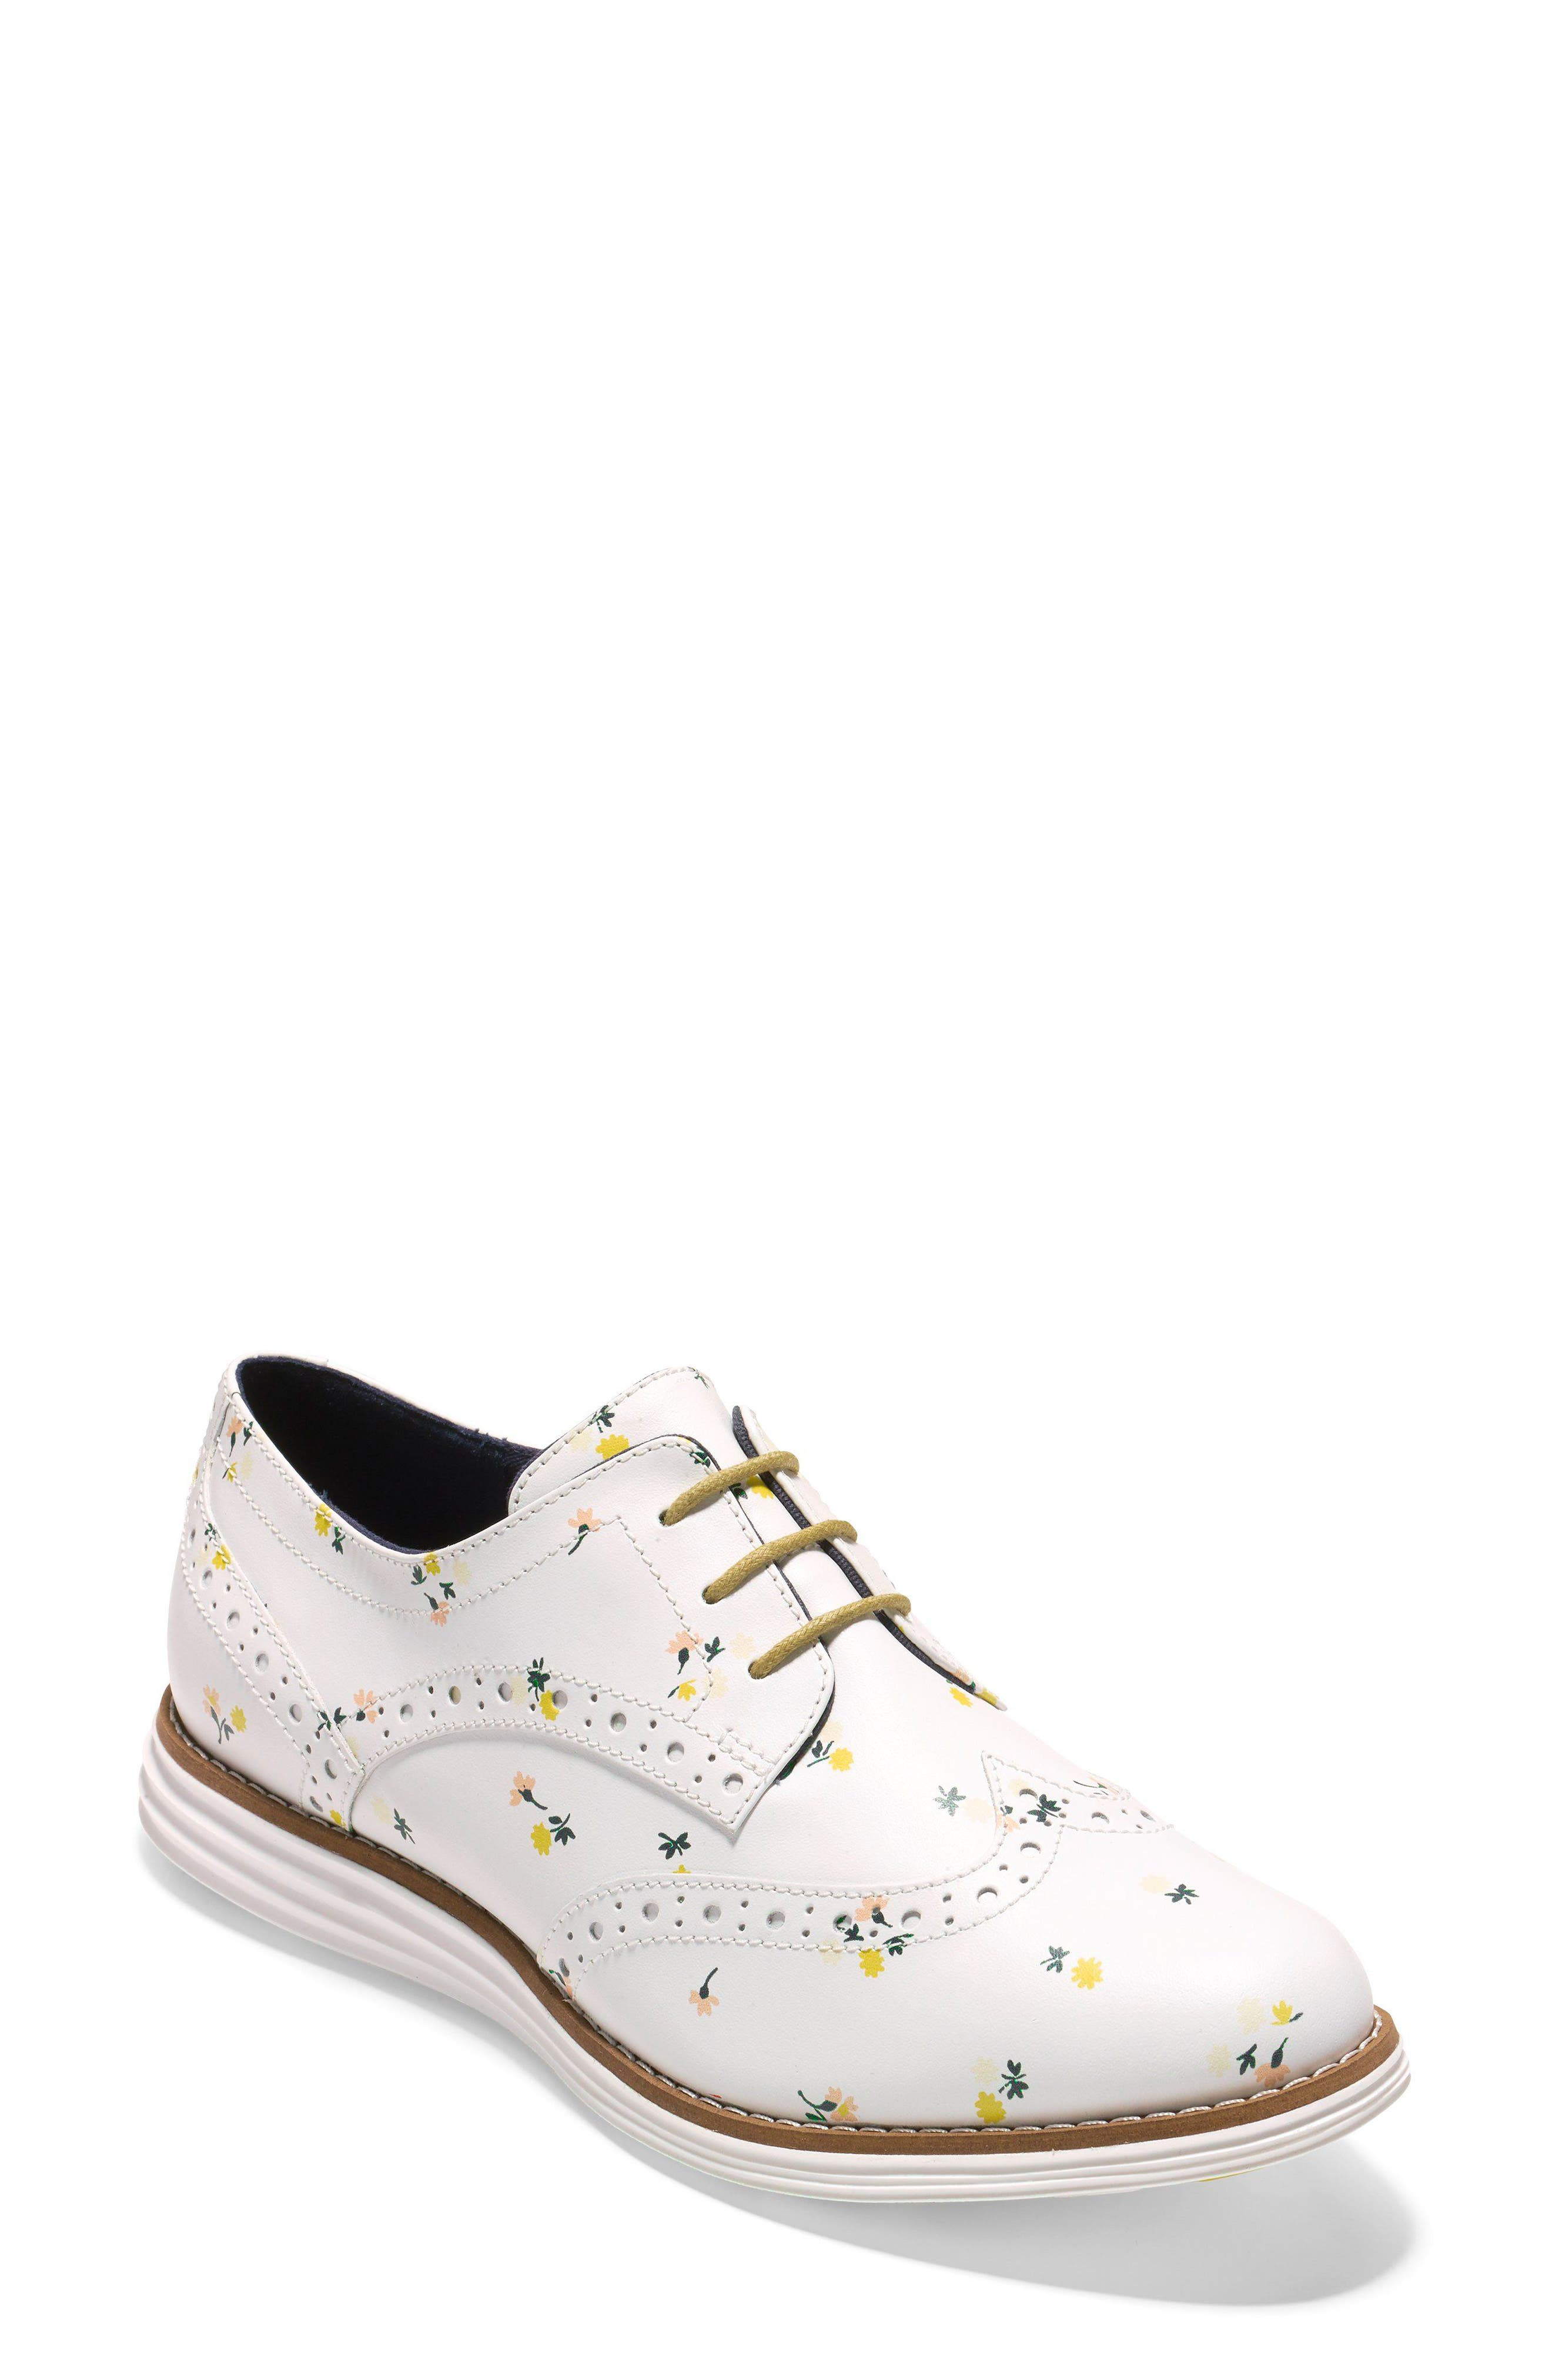 'Original Grand' Wingtip Oxford,                             Main thumbnail 1, color,                             Optic White Printed Leather